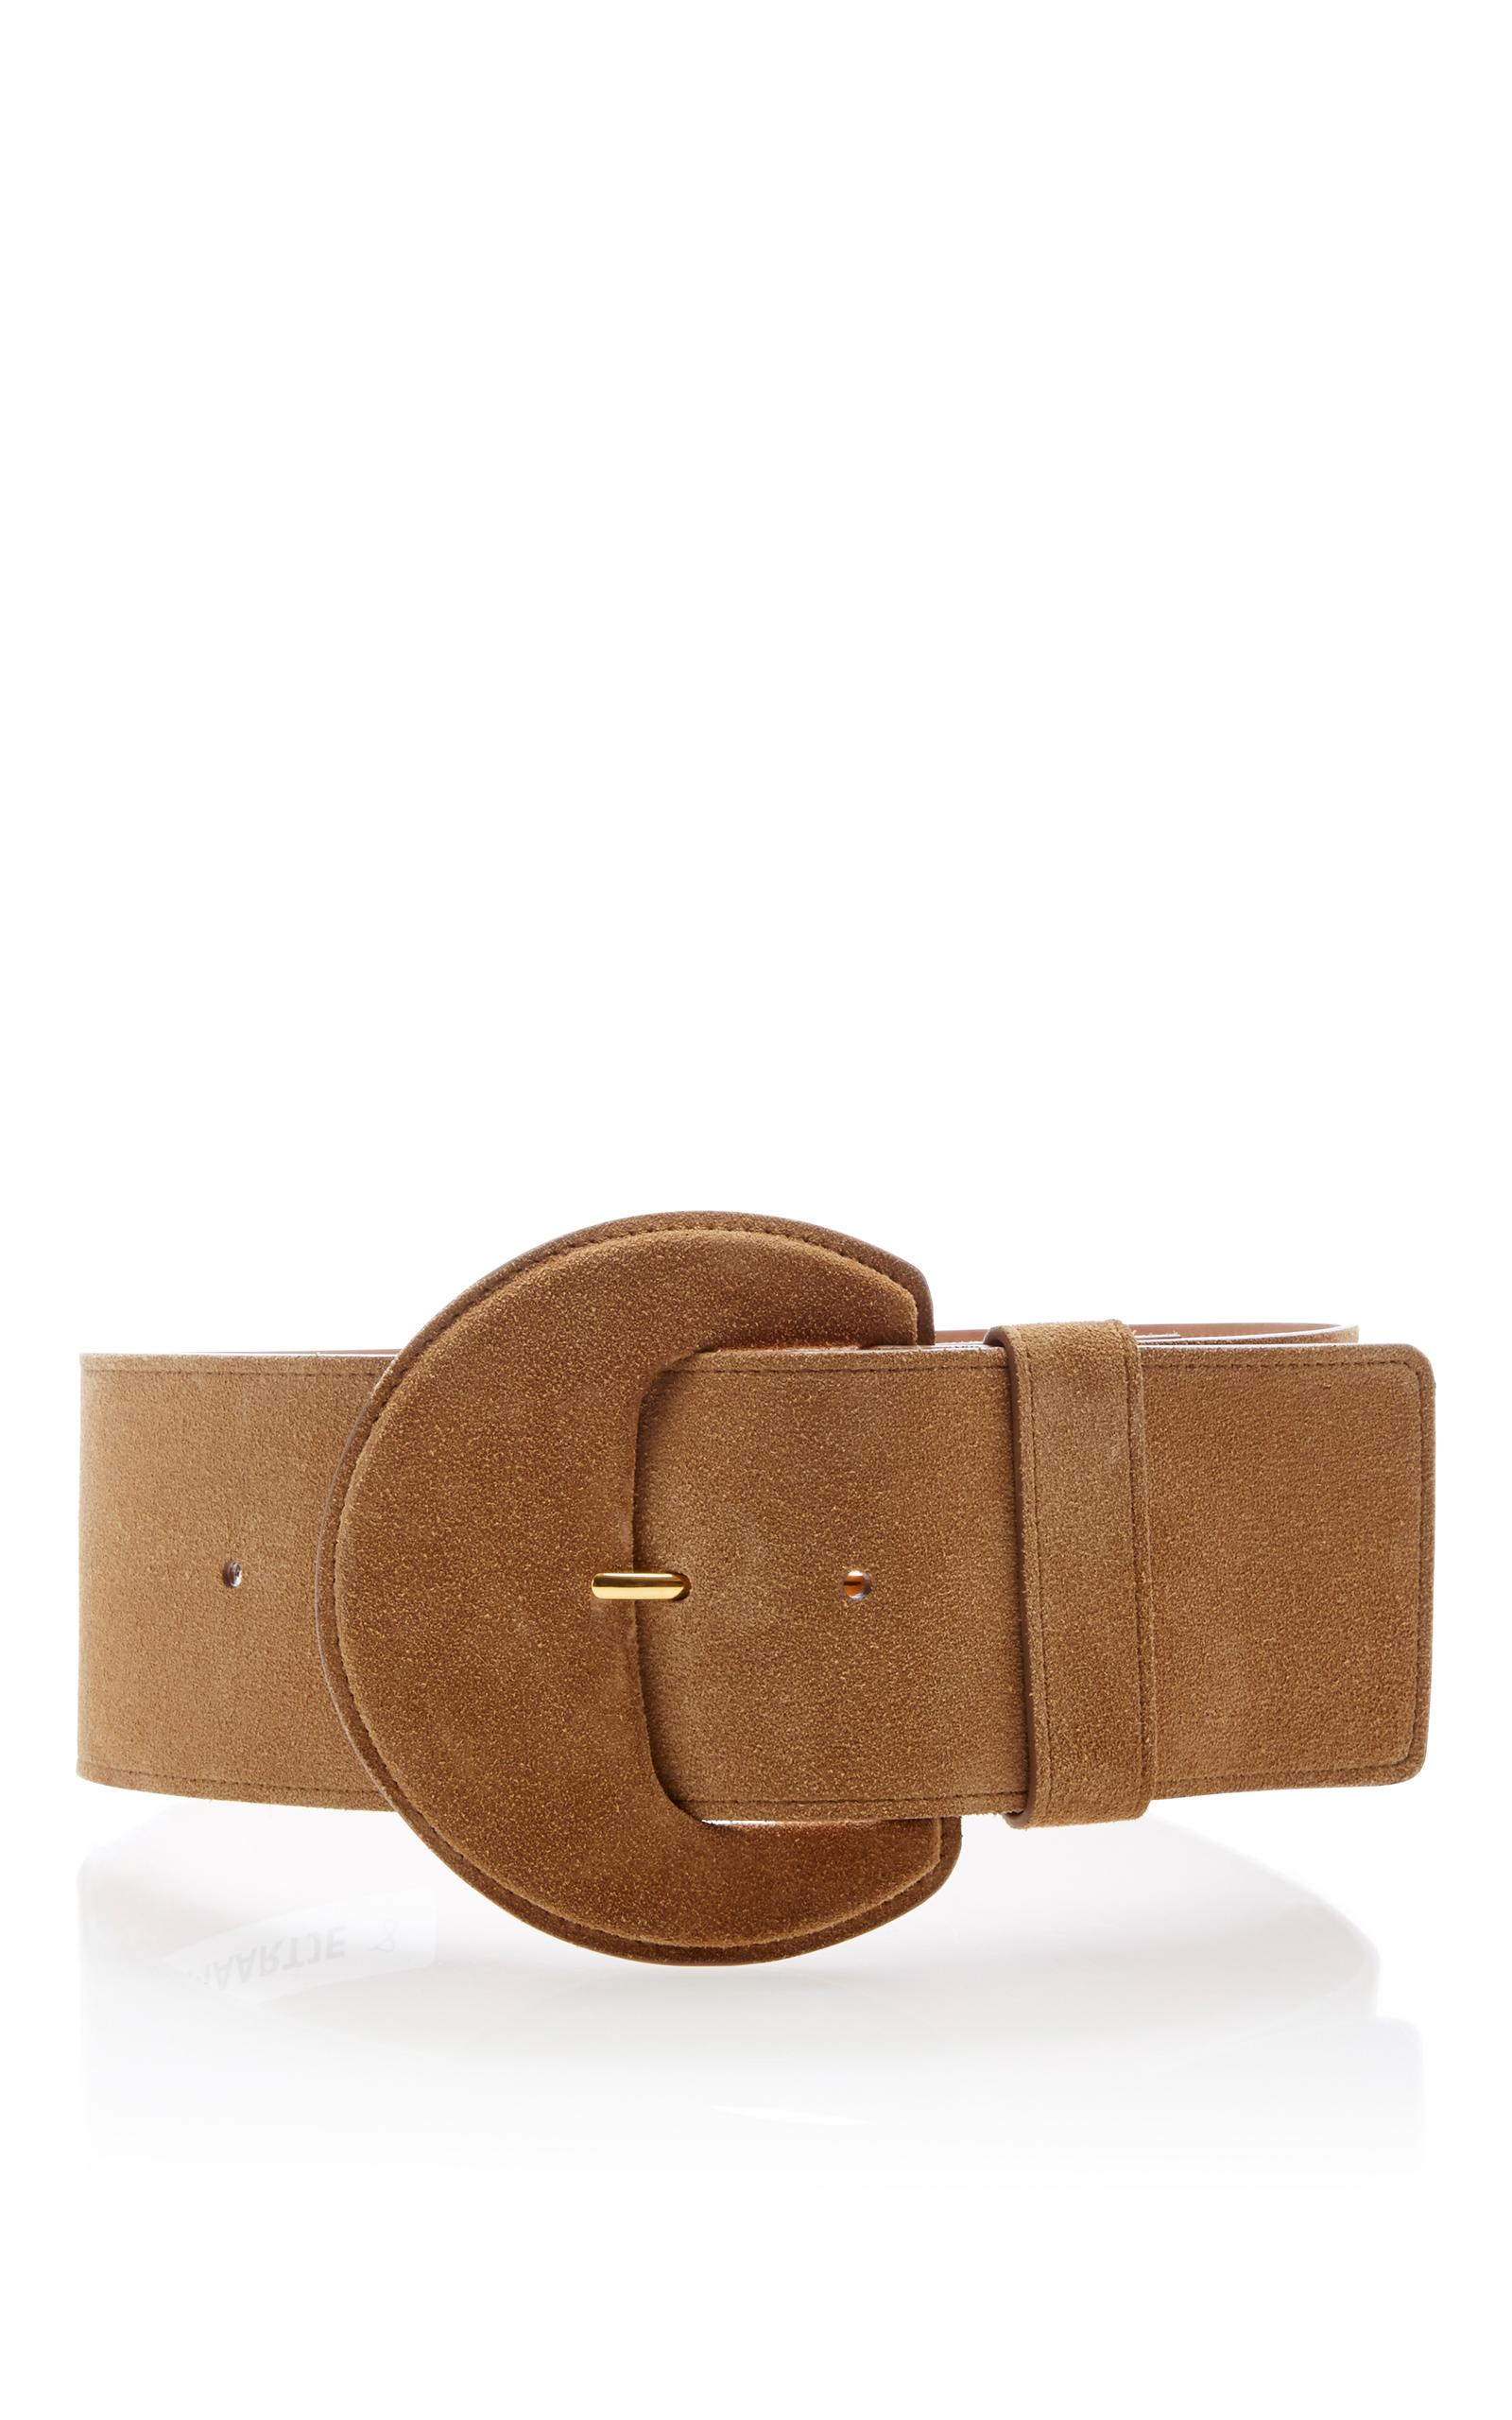 michael kors large leather belt in brown lyst